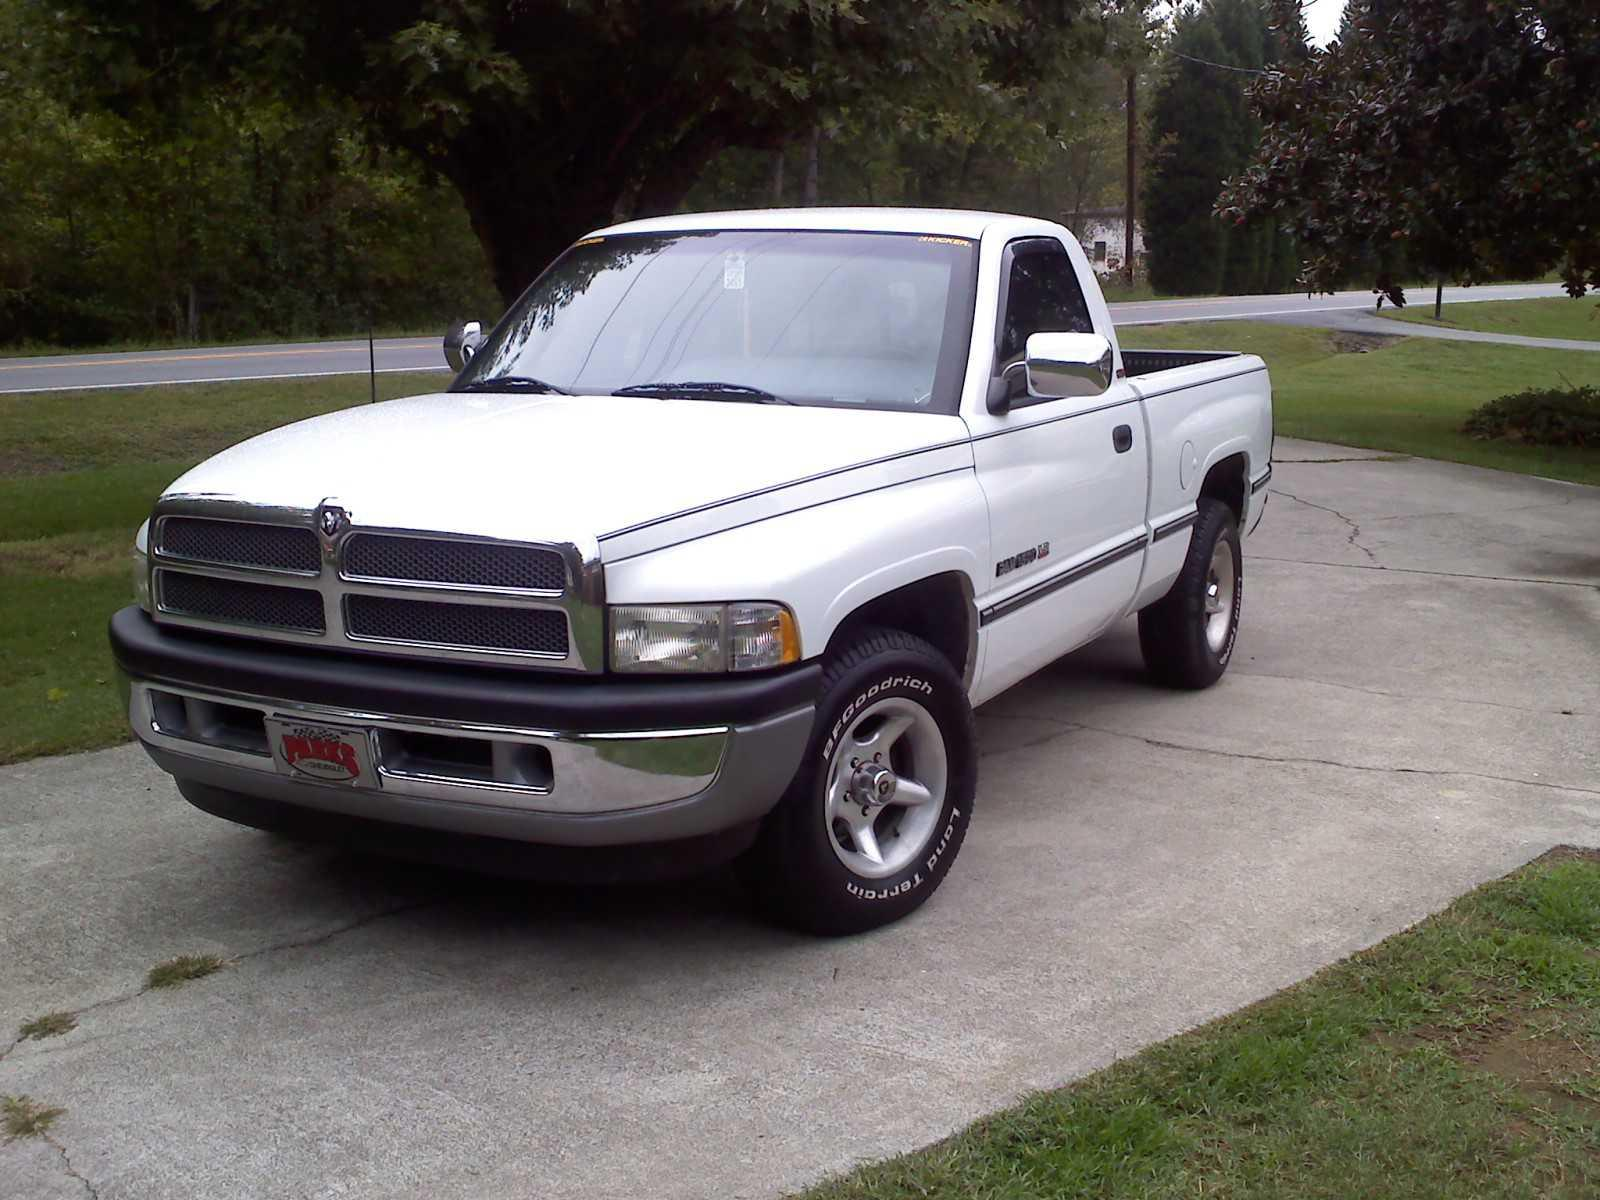 JuicyJ3's 1997 Dodge Ram 1500 Club Cab